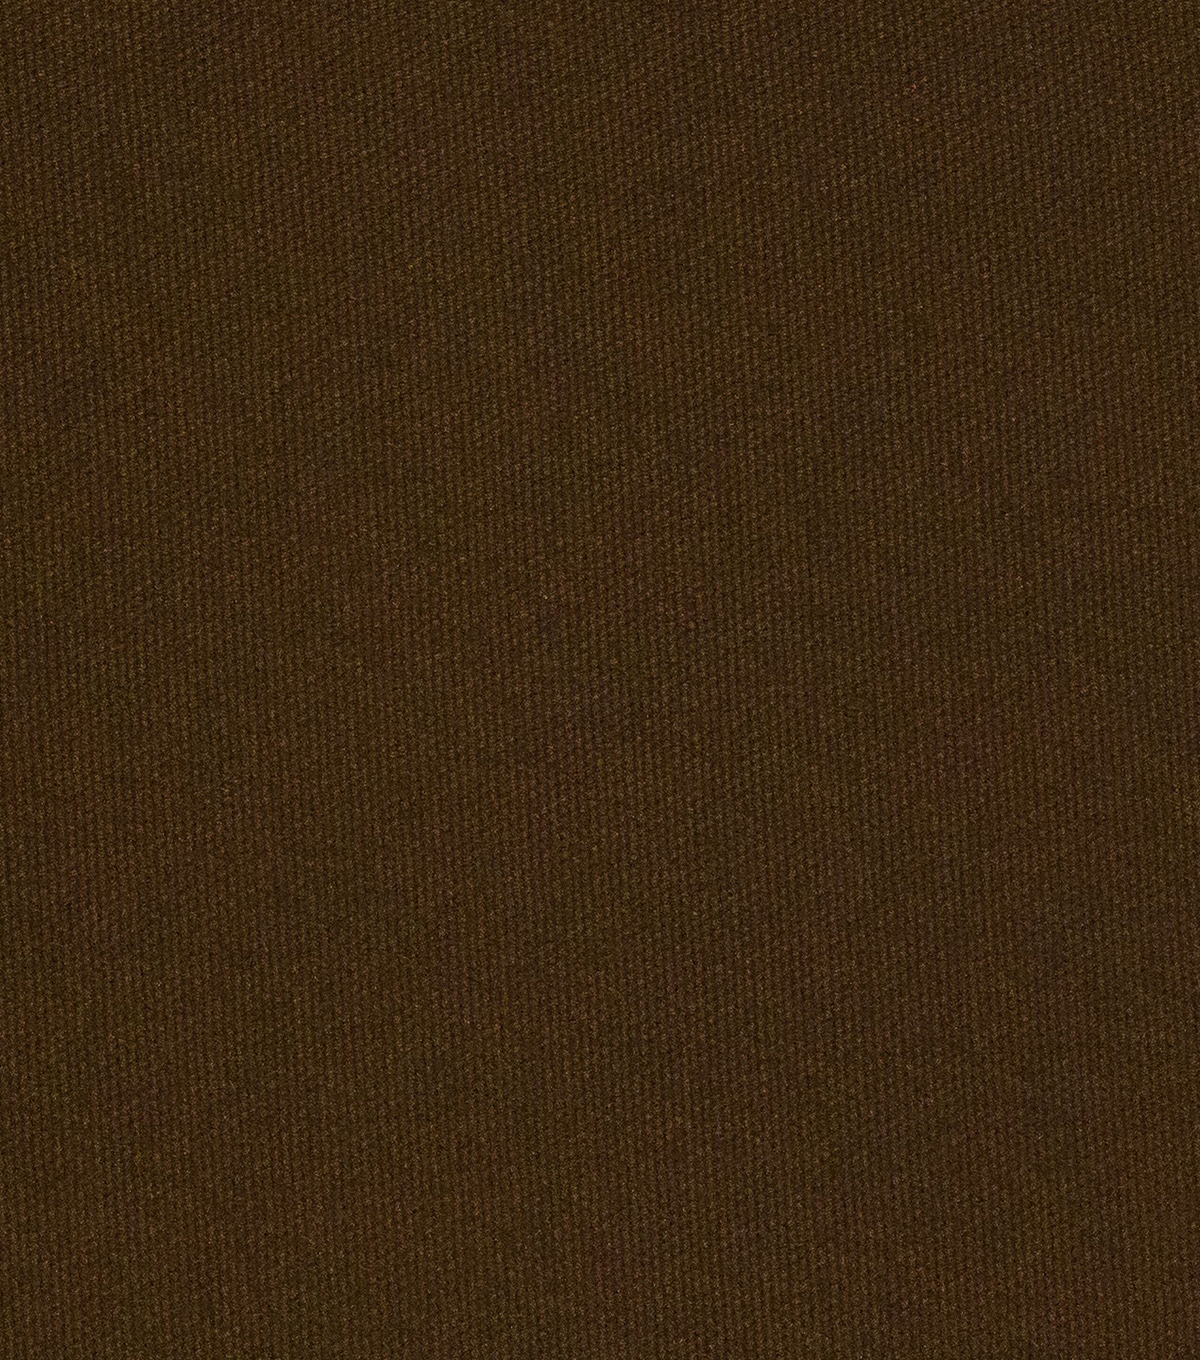 Home Decor 8\u0022x8\u0022 Fabric Swatch-Elite Orion Cappuccino